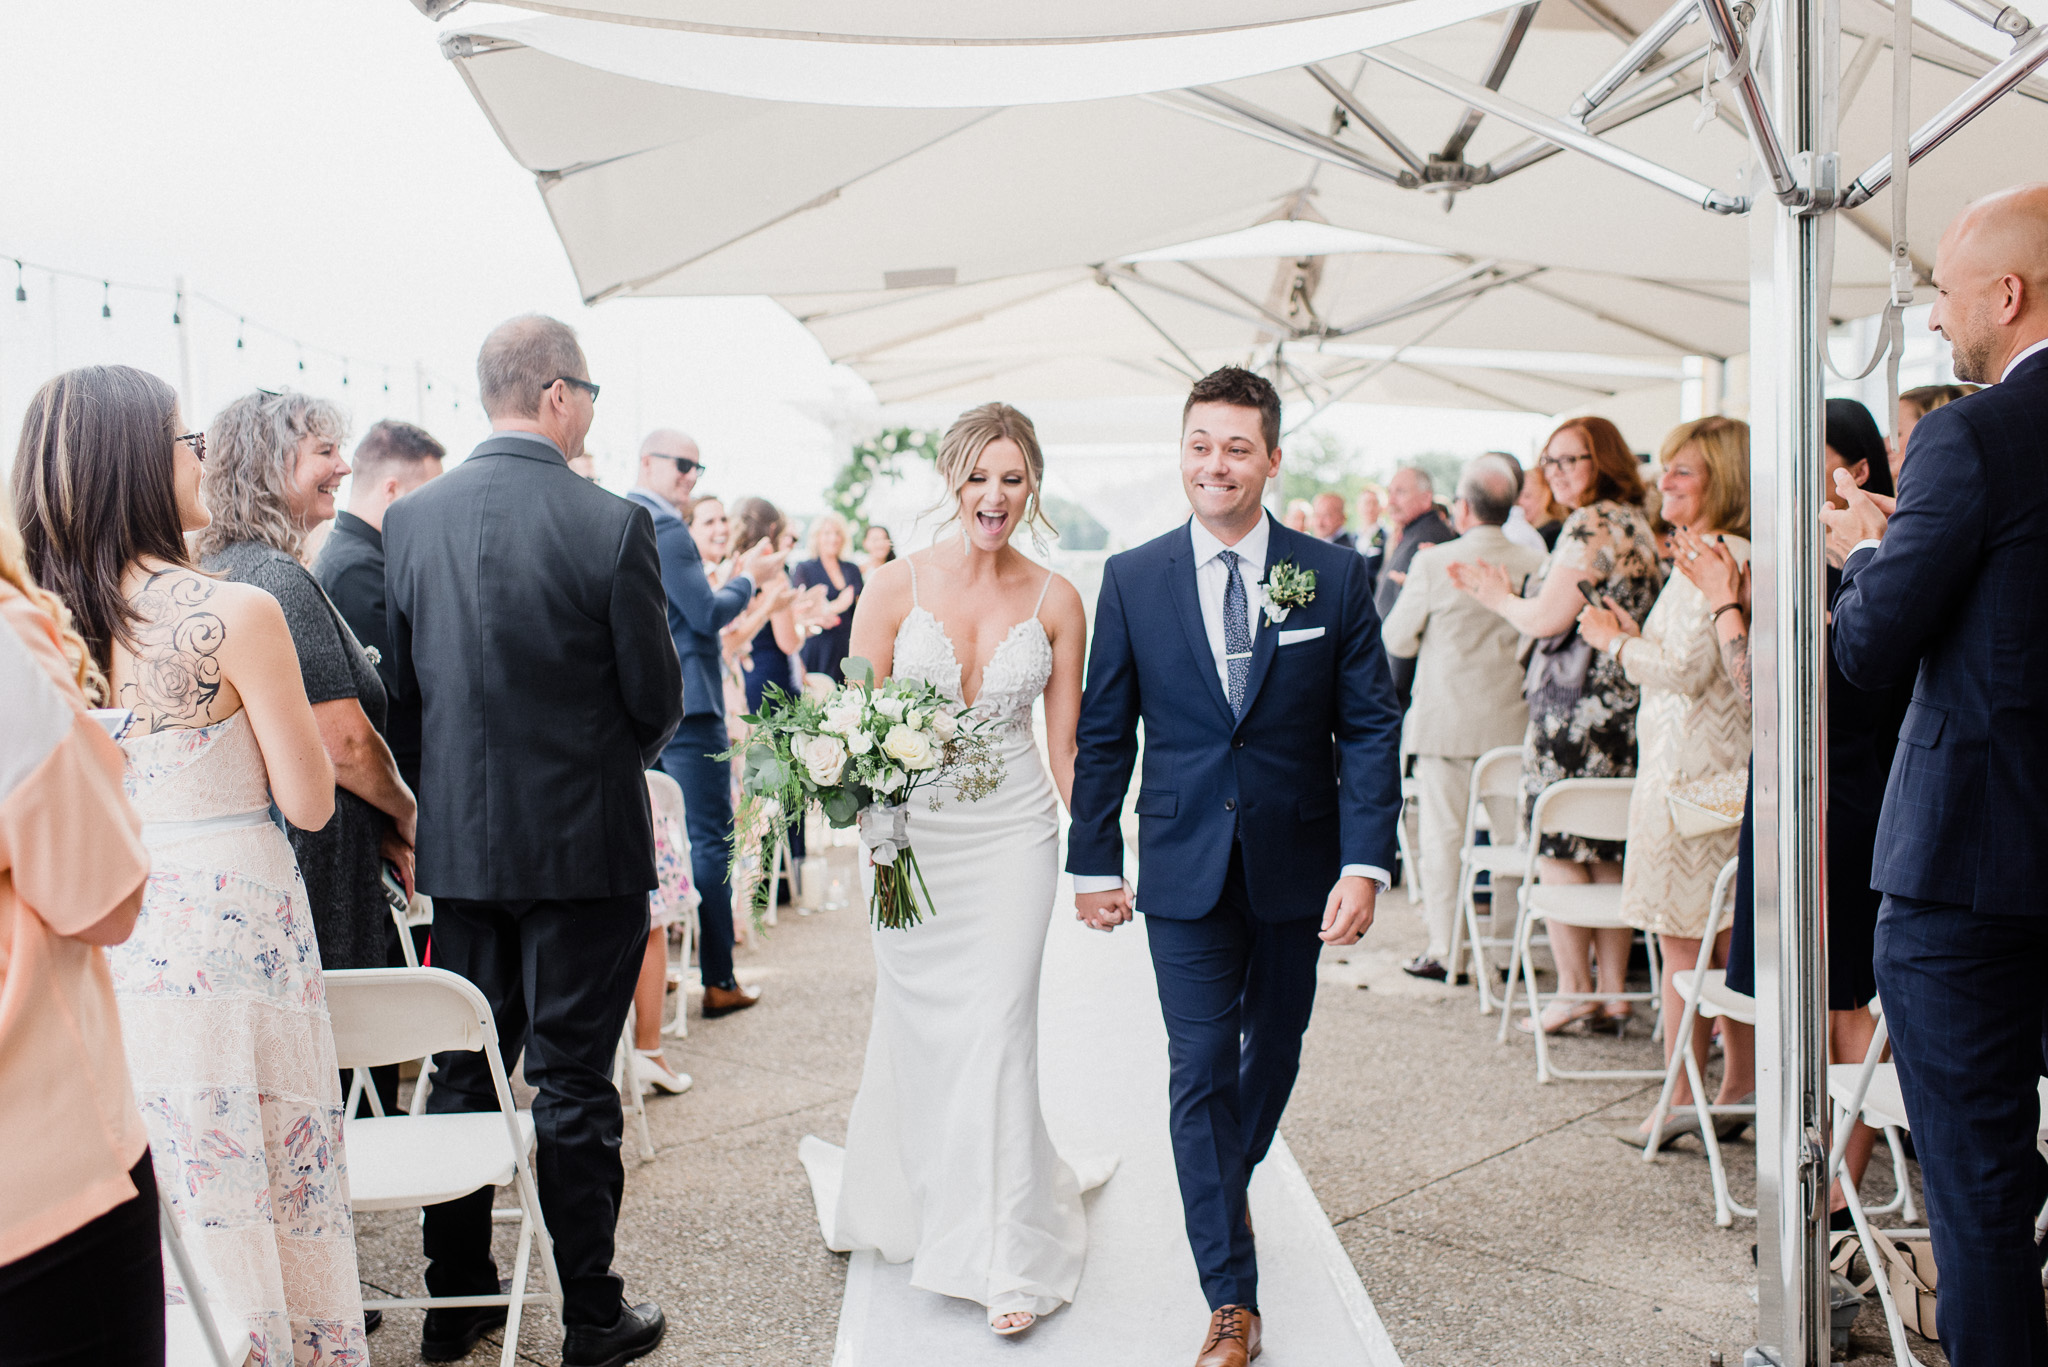 Harbourfront Wedding Photos by Jenn Kavanagh Photography